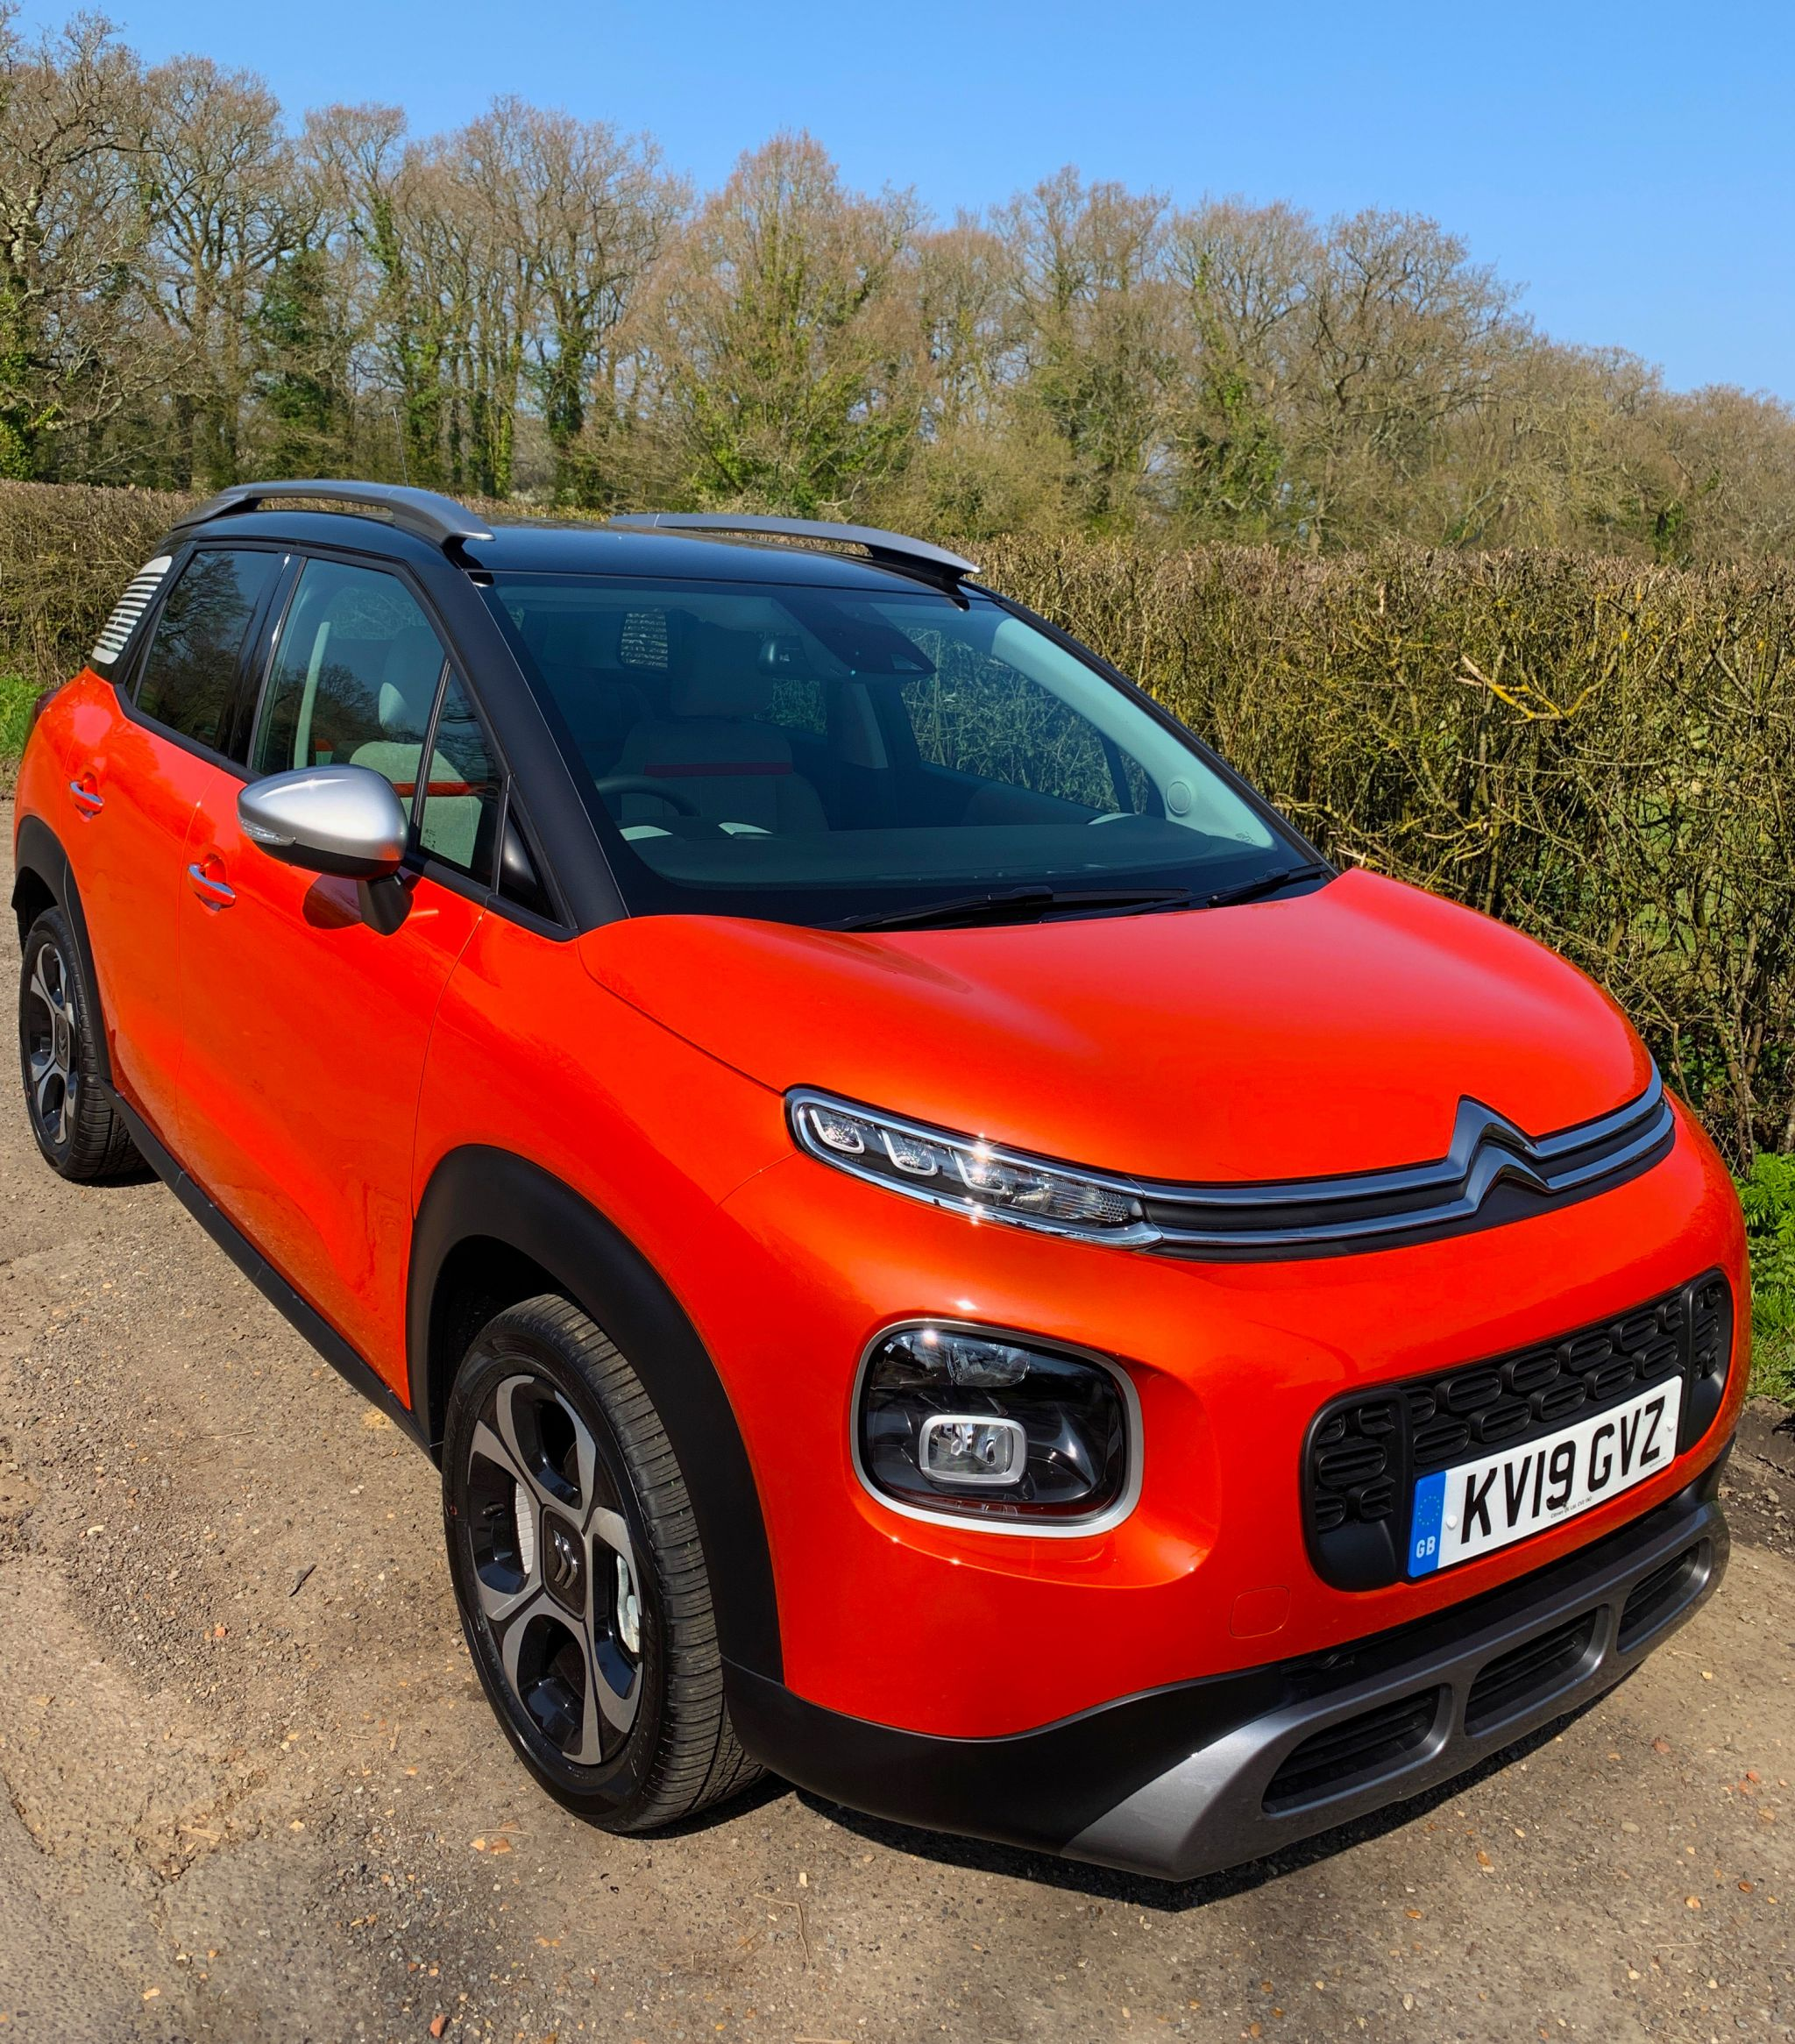 The Citroën C3 Aircross: the best off-roader ever?